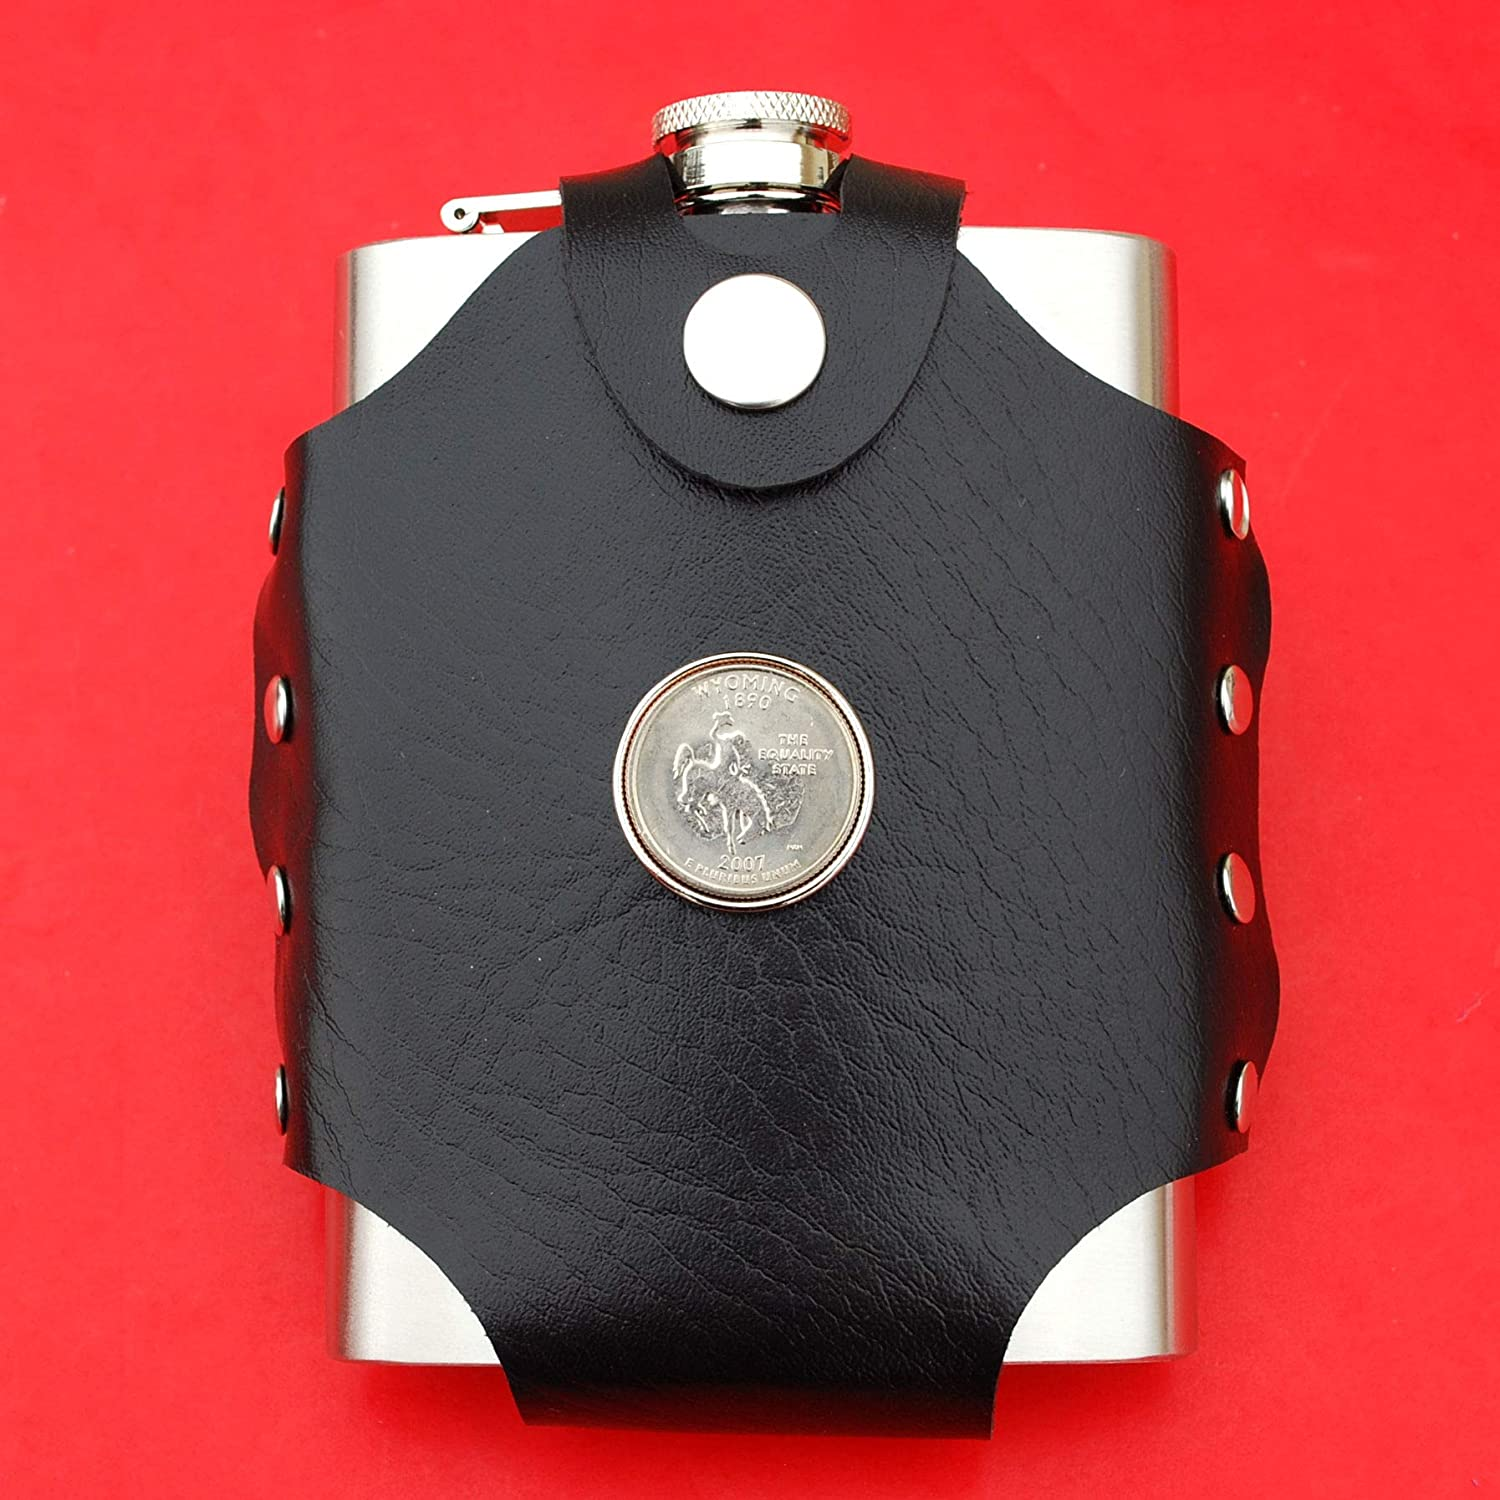 US 2007 Wyoming State Quarter BU Uncirculated Coin Leak Proof Black PU Leather Wrapped Stainless Steel 8 Oz Hip Flask Water Liquor Wine etc.